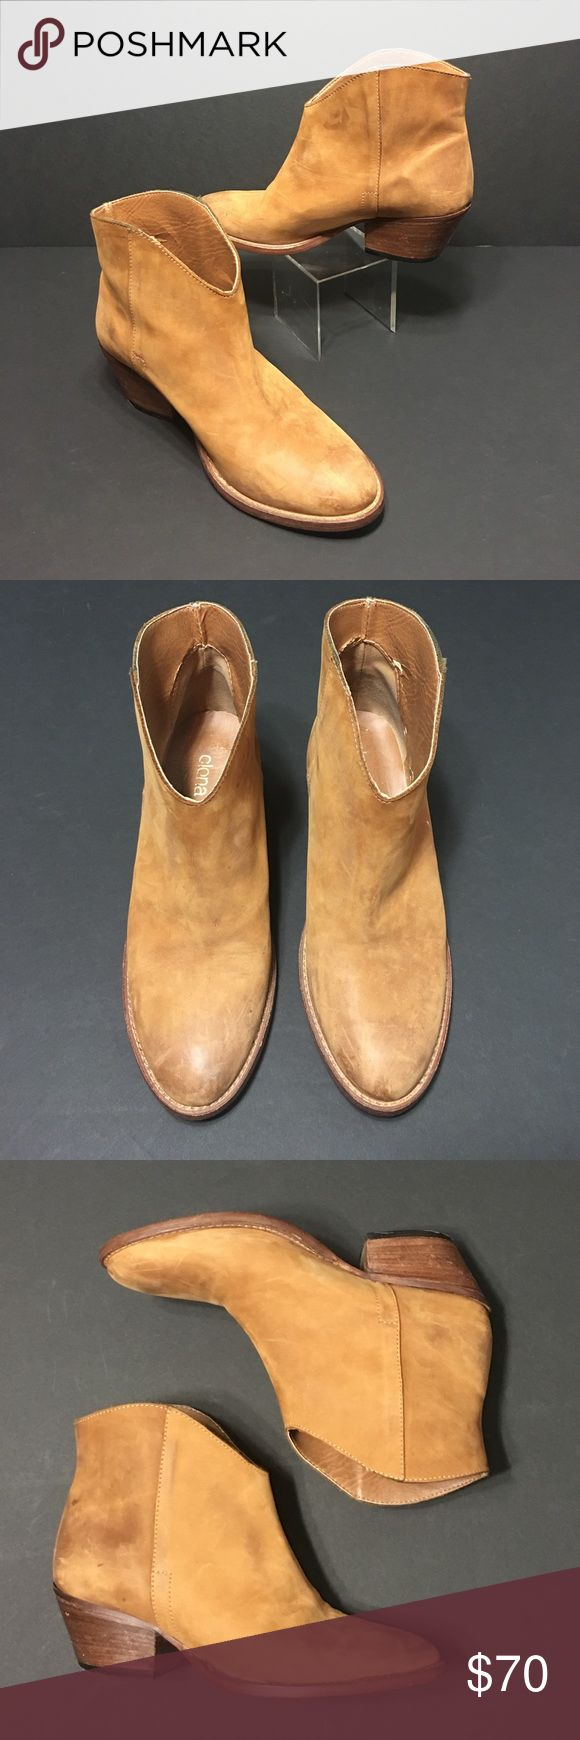 Clona Camel Color Nubuck Booties • Sz 8 Great colored booties to go with your skinny jeans, leggings or whatever outfit you want to pair them with • These are a nubuck suede • Have that worn in look and super comfortable to wear Clona Shoes Ankle Boots & Booties